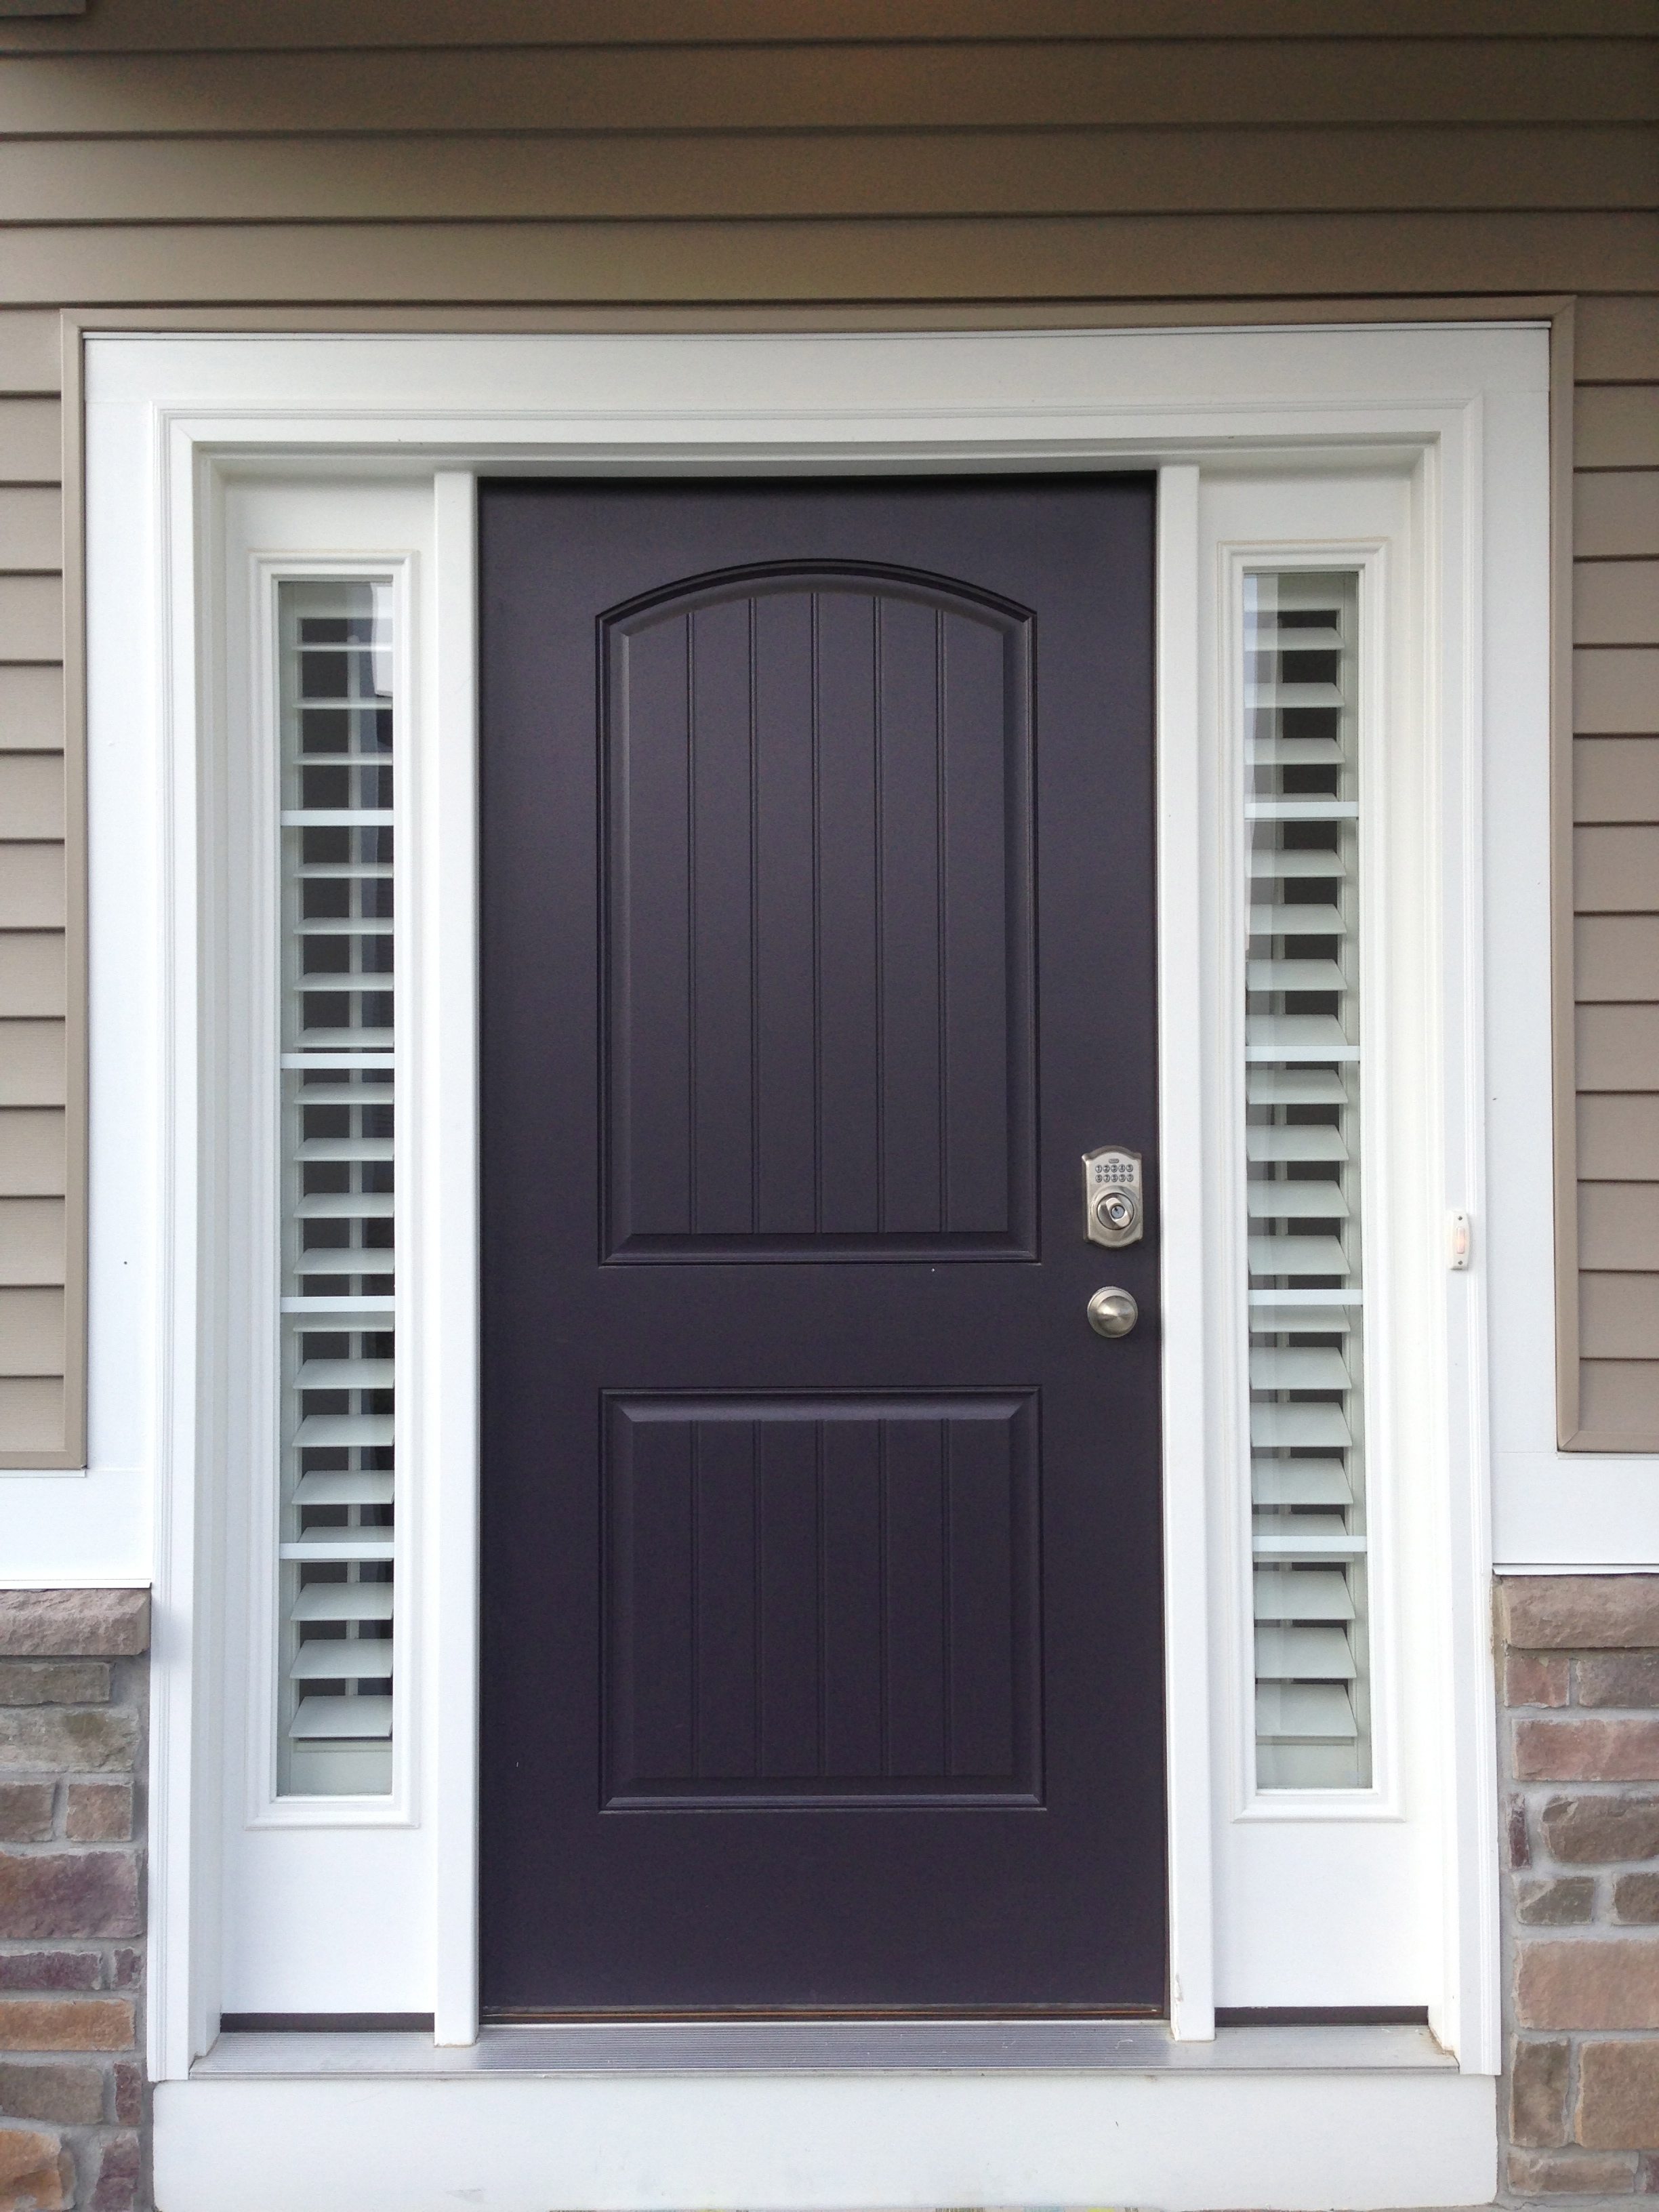 the and doors with img exterior sidelight shutters on sidelights door window entry blinds cleveland front